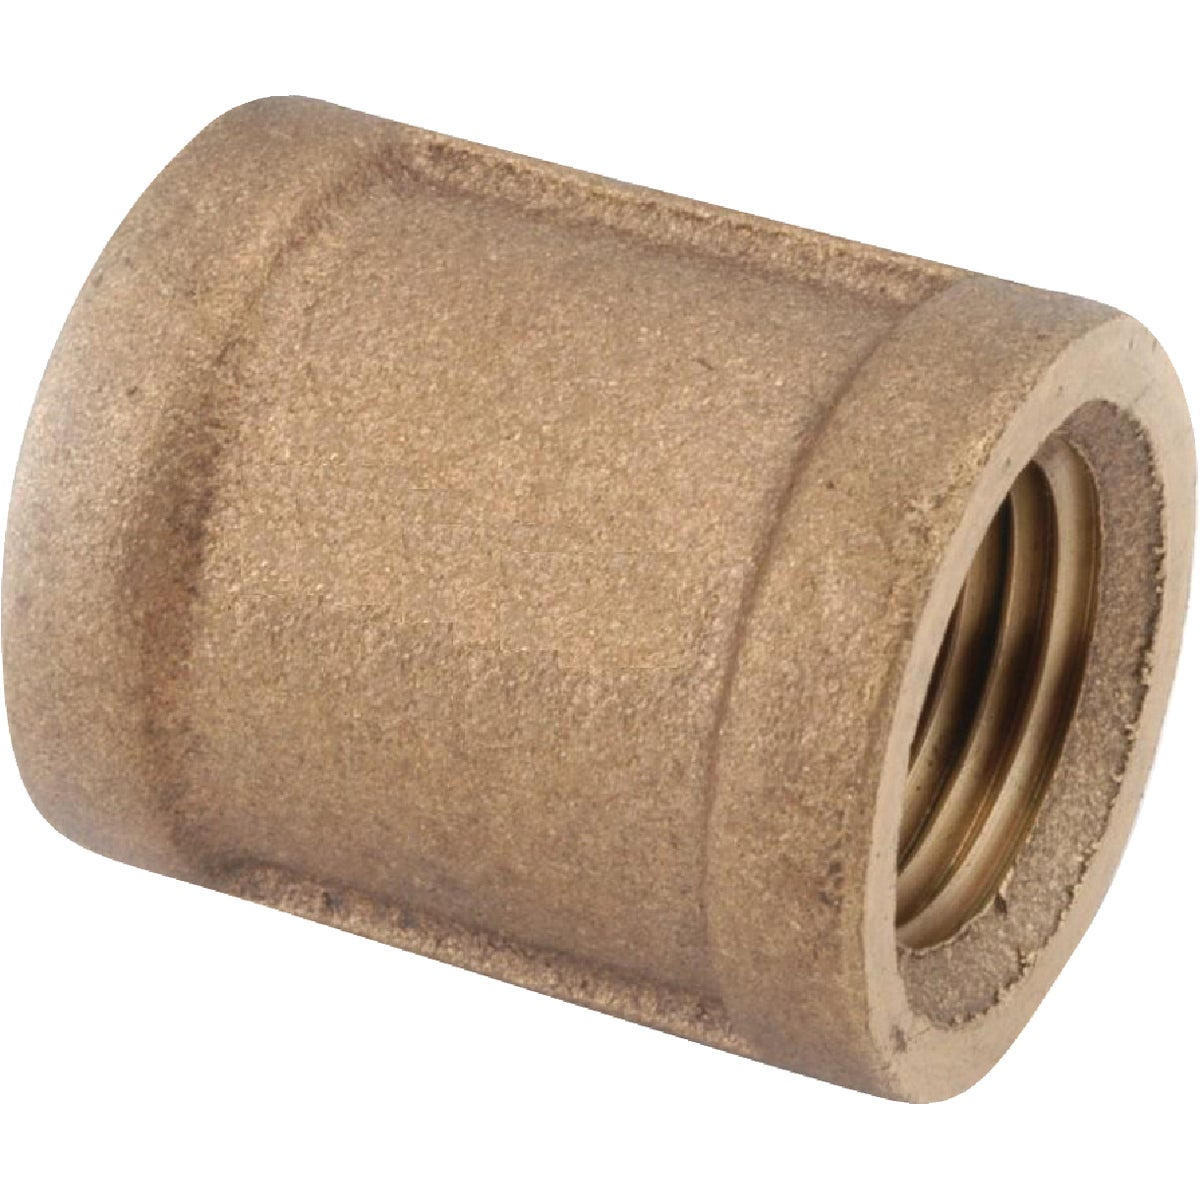 """3/4"""" BRASS COUPLING - 738103-12 by Anderson Metals Corp"""